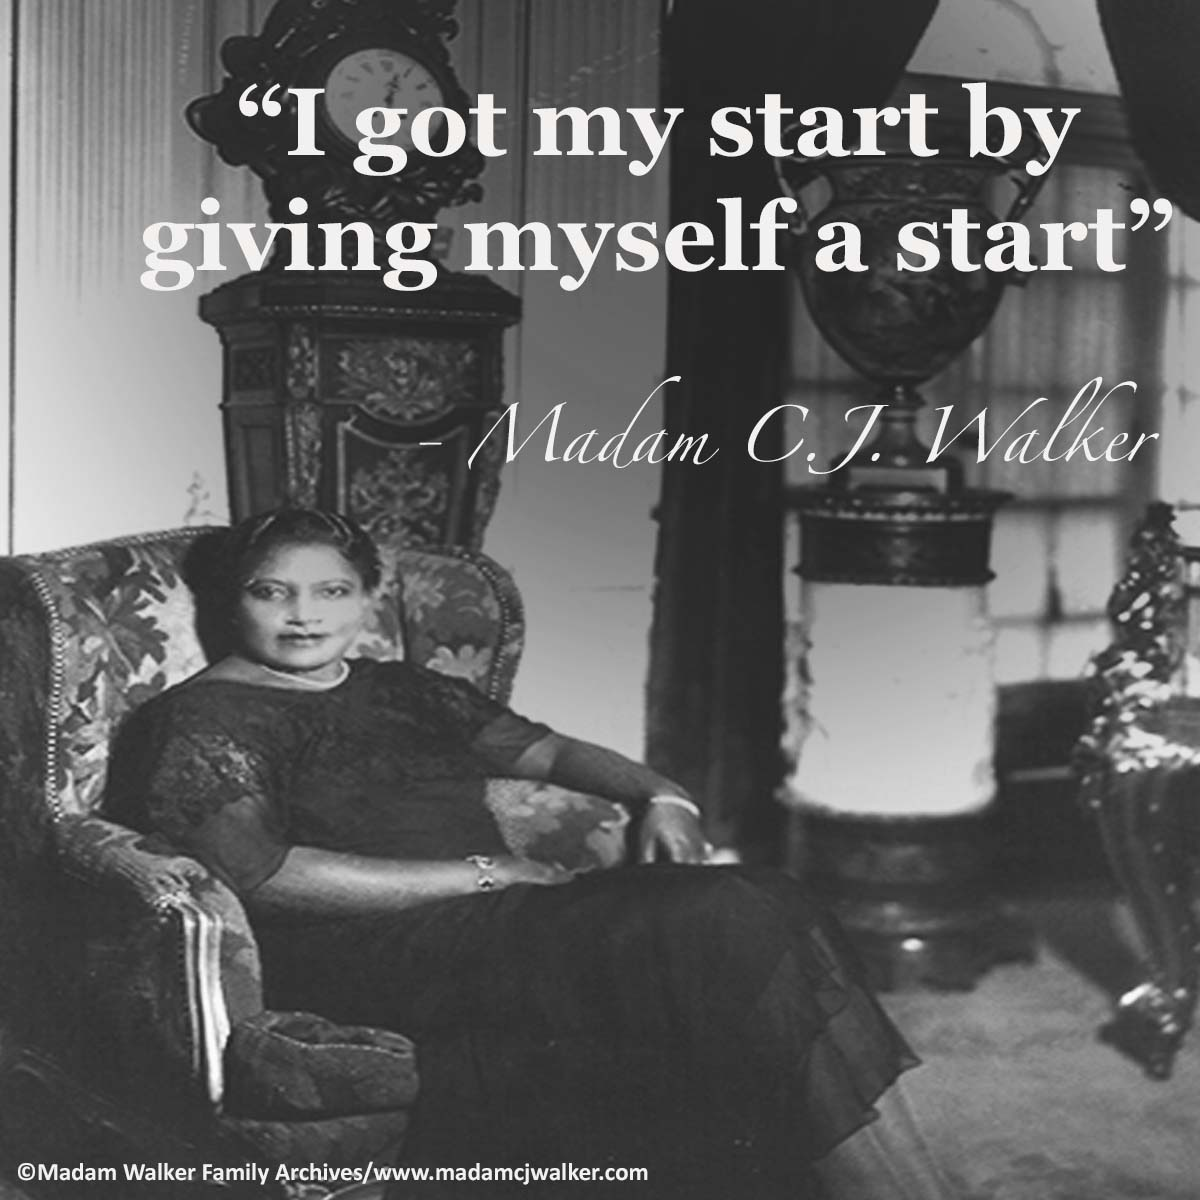 madam cj walker essay Open document below is an essay on madam cj walker from anti essays, your source for research papers, essays, and term paper examples.